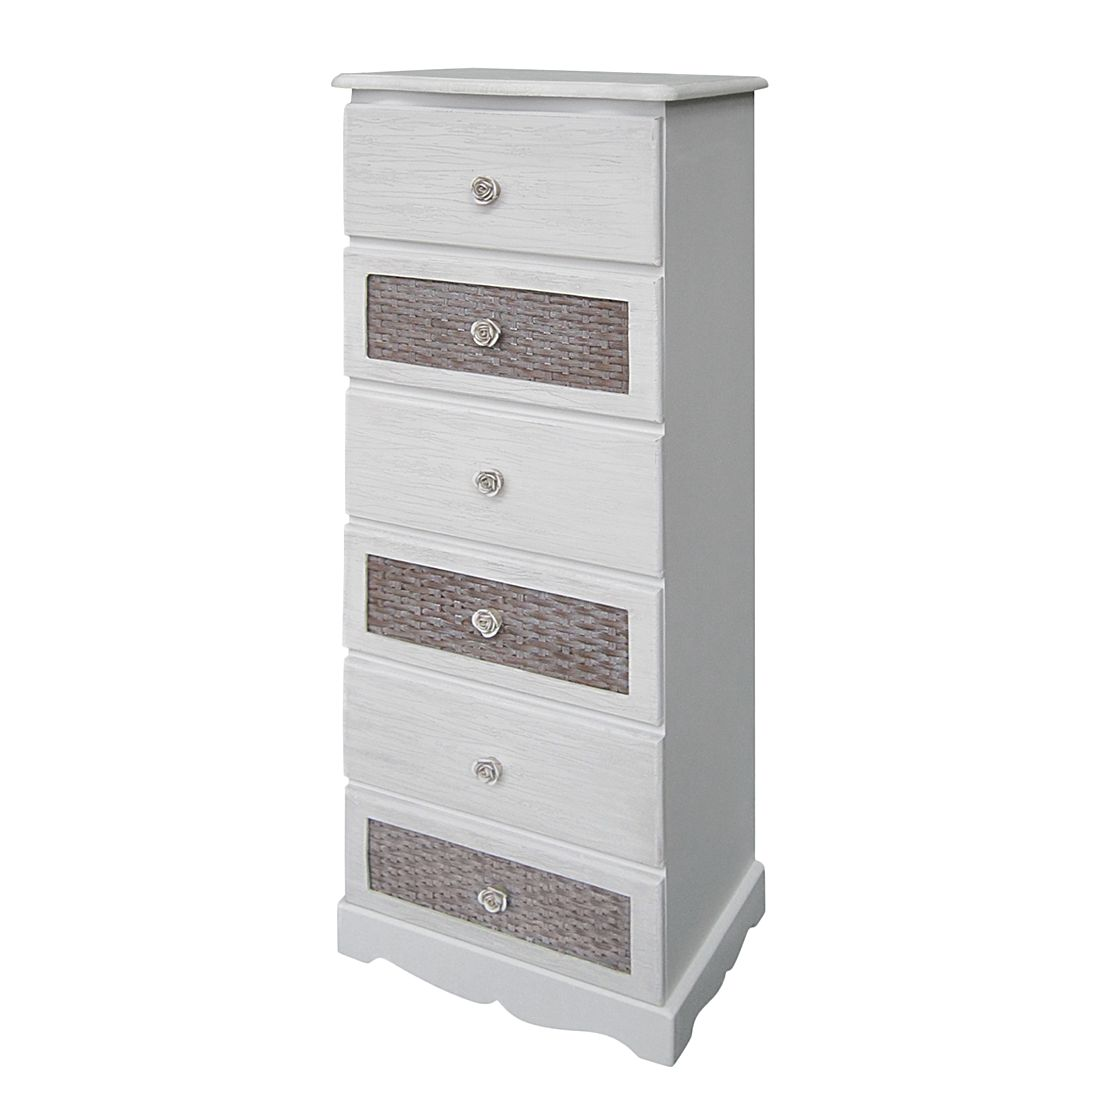 kommode 25 cm tief interesting held mbel hngeschrank rallye breite cm kaufen with kommode 25 cm. Black Bedroom Furniture Sets. Home Design Ideas